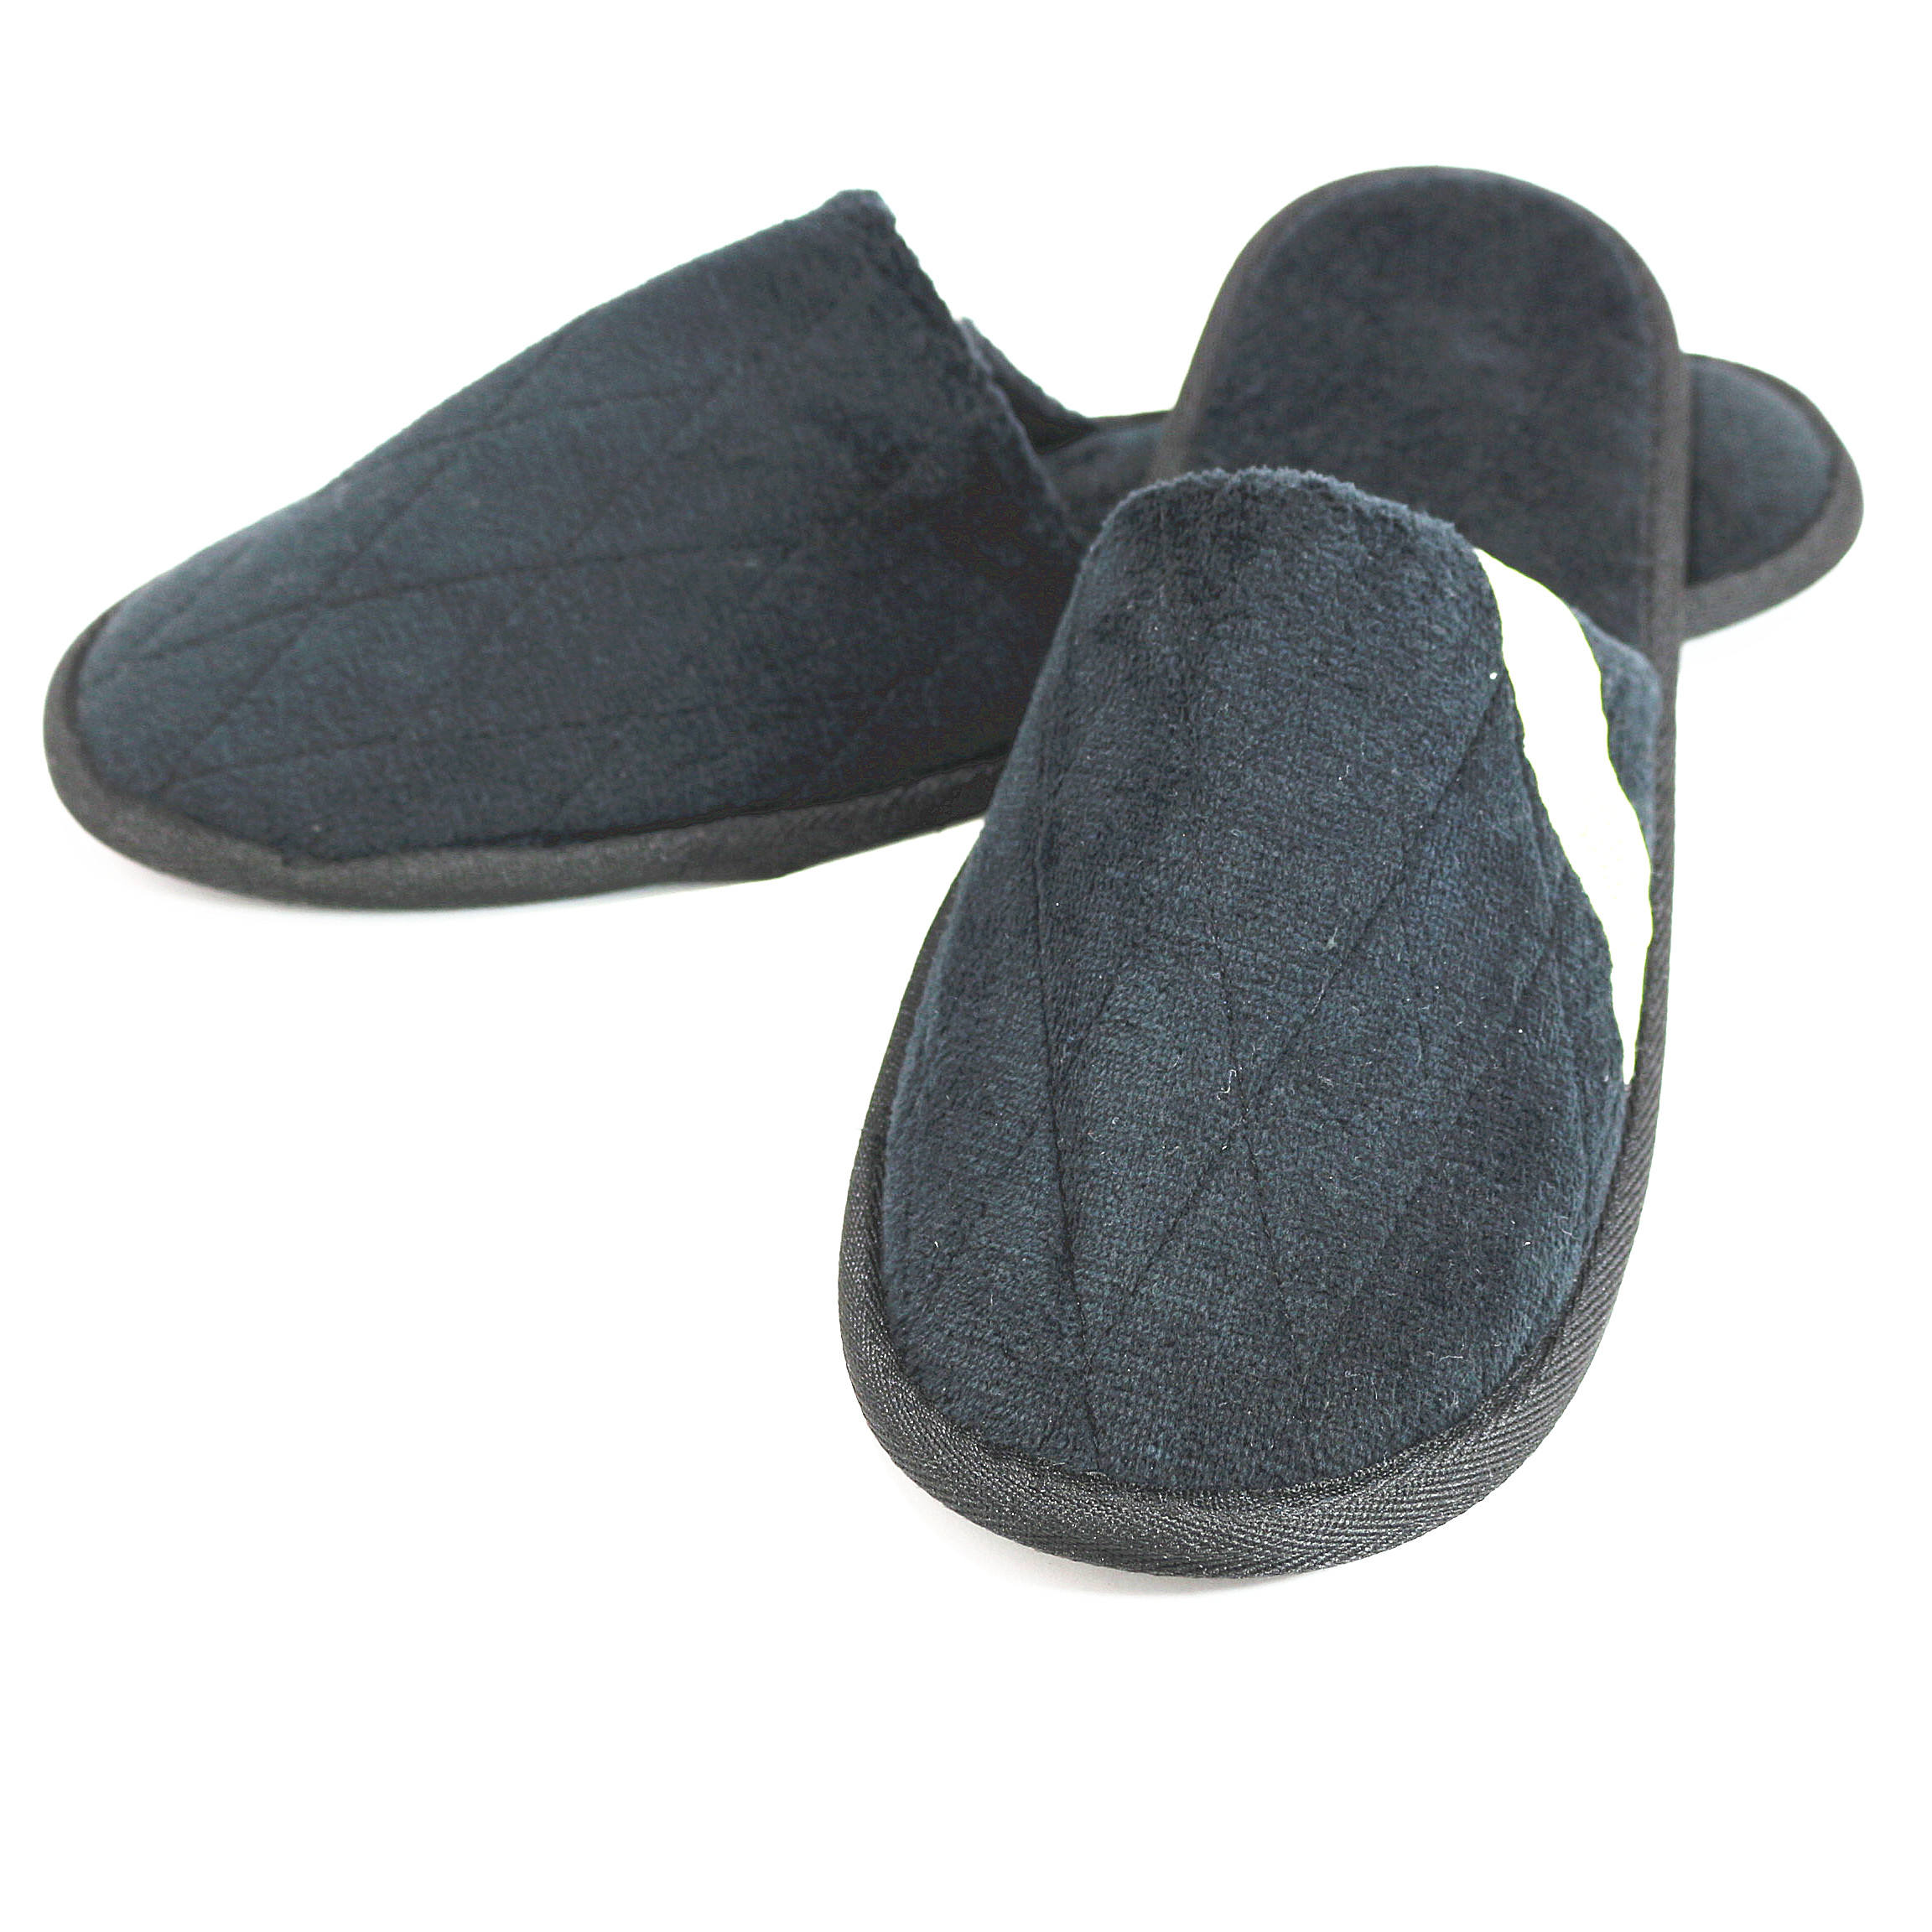 disposable cotton hotel slippers for men